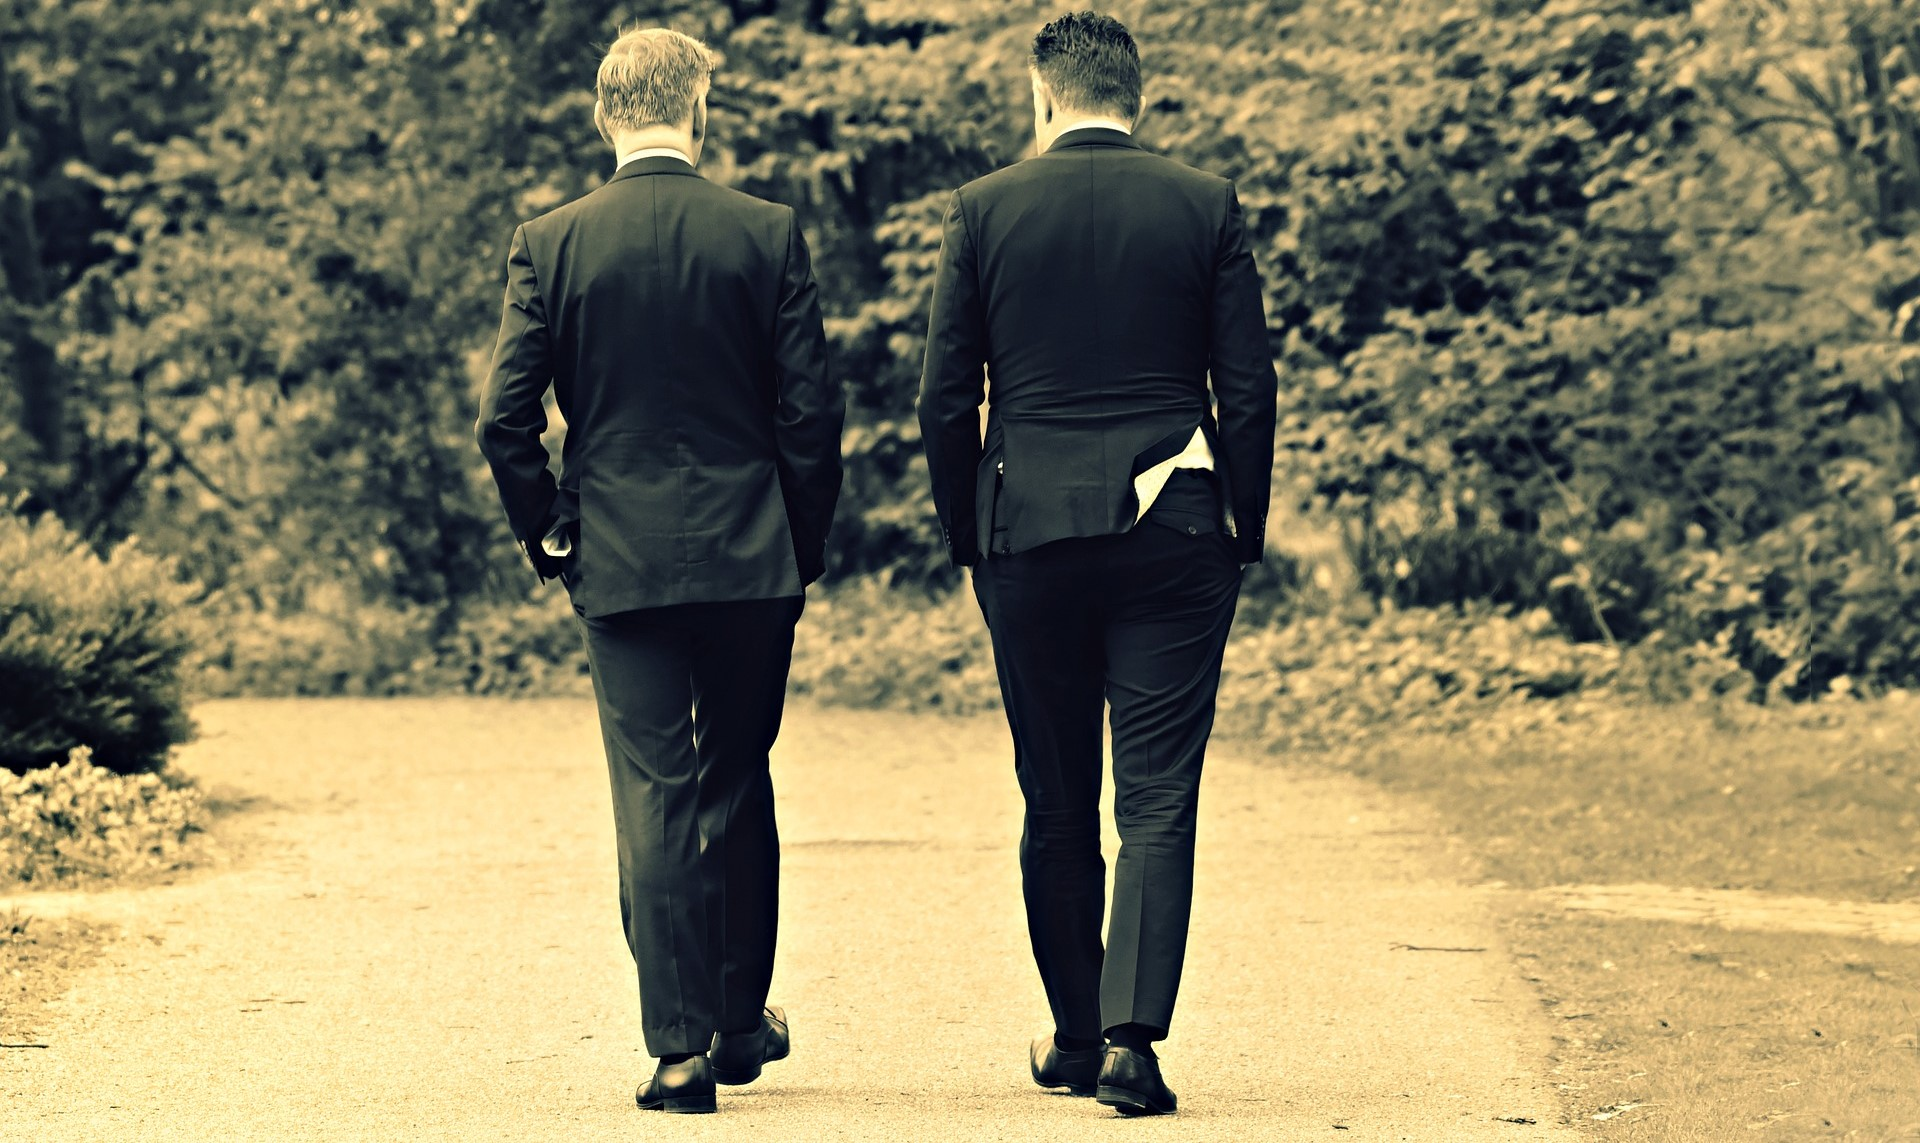 Two men are walking